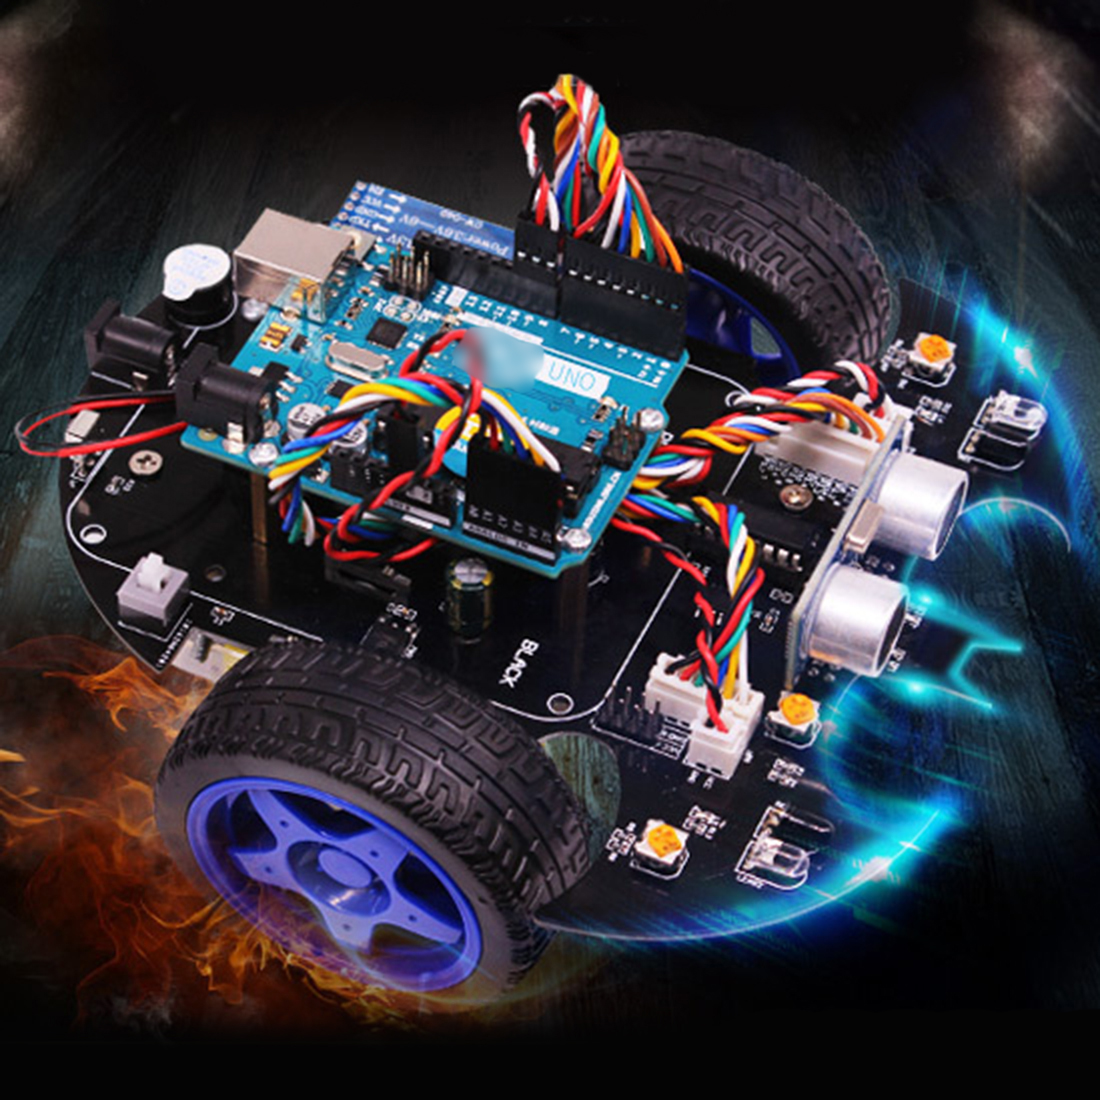 2019 Bat Smart Robot Car Project Complete Starter Kit With Tutorial Learning & Educational Electronic Toy For Arduino Pakistan